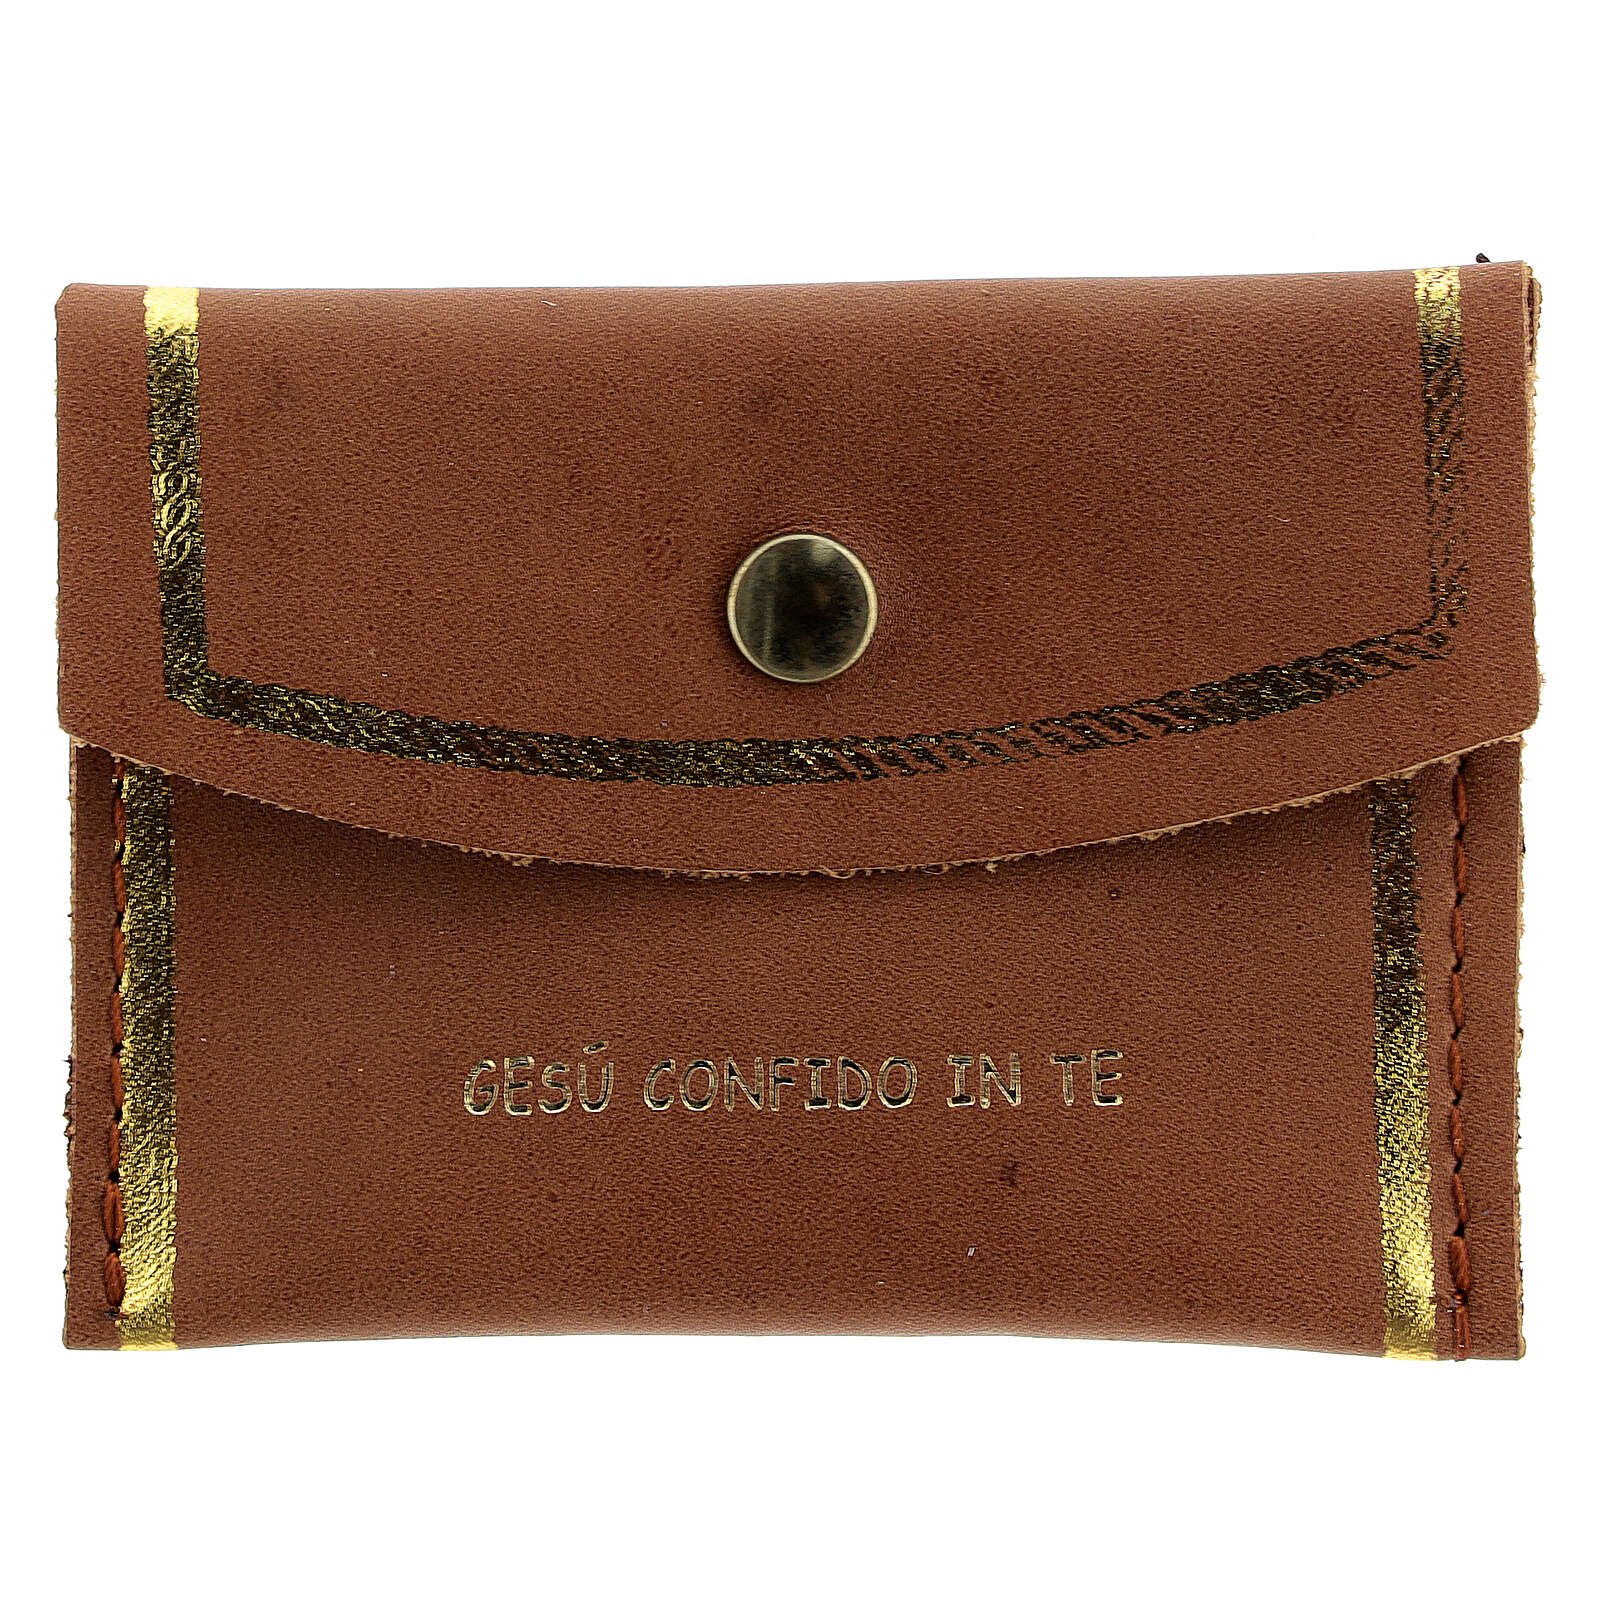 Bag Merciful Jesus real leather 8.5x6.5 cm 4